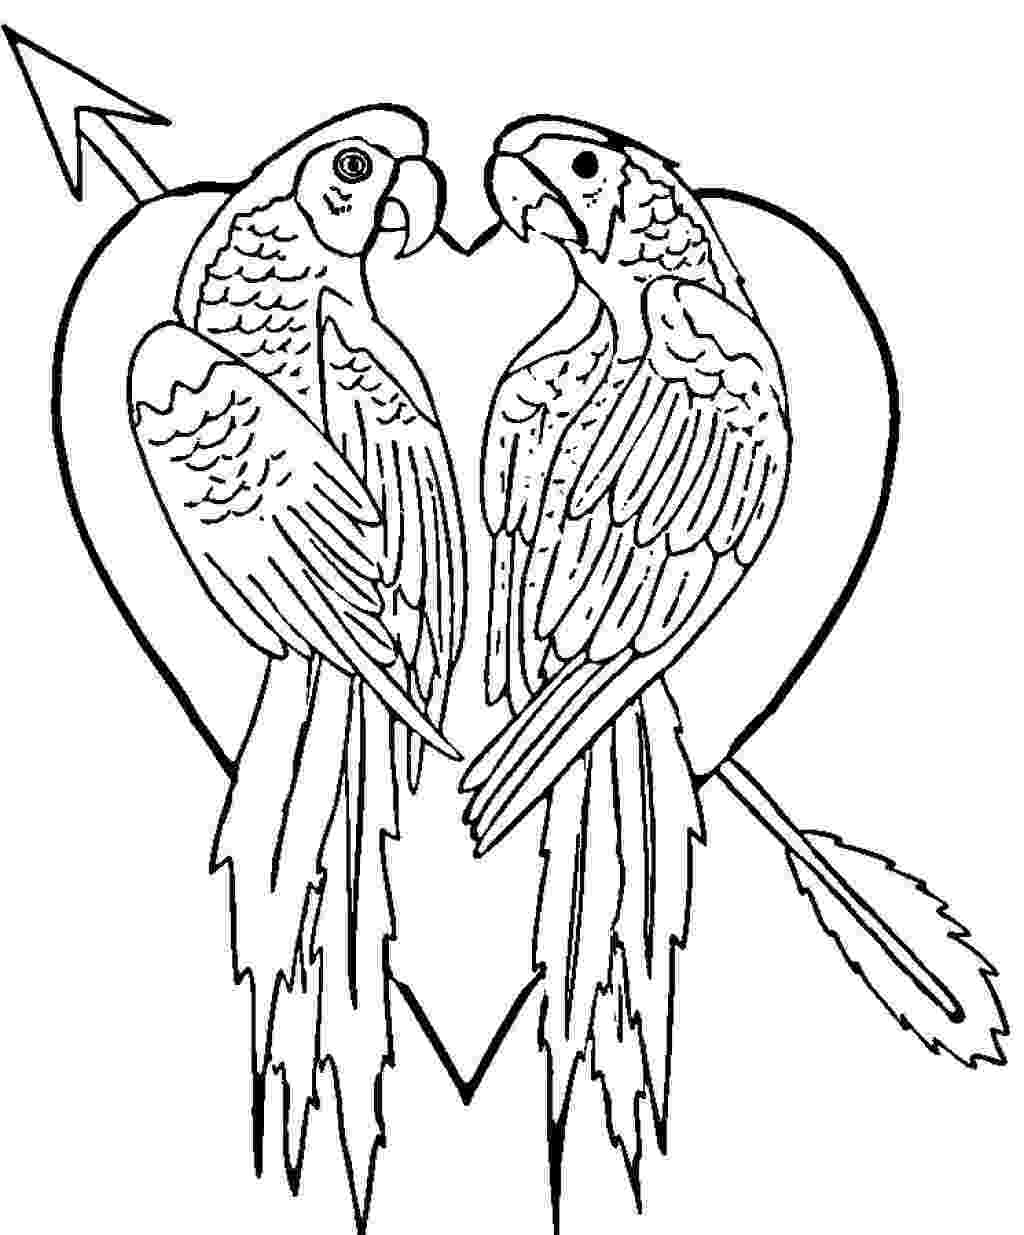 pictures of parrots to colour free printable parrot coloring pages for kids parrots pictures colour of to